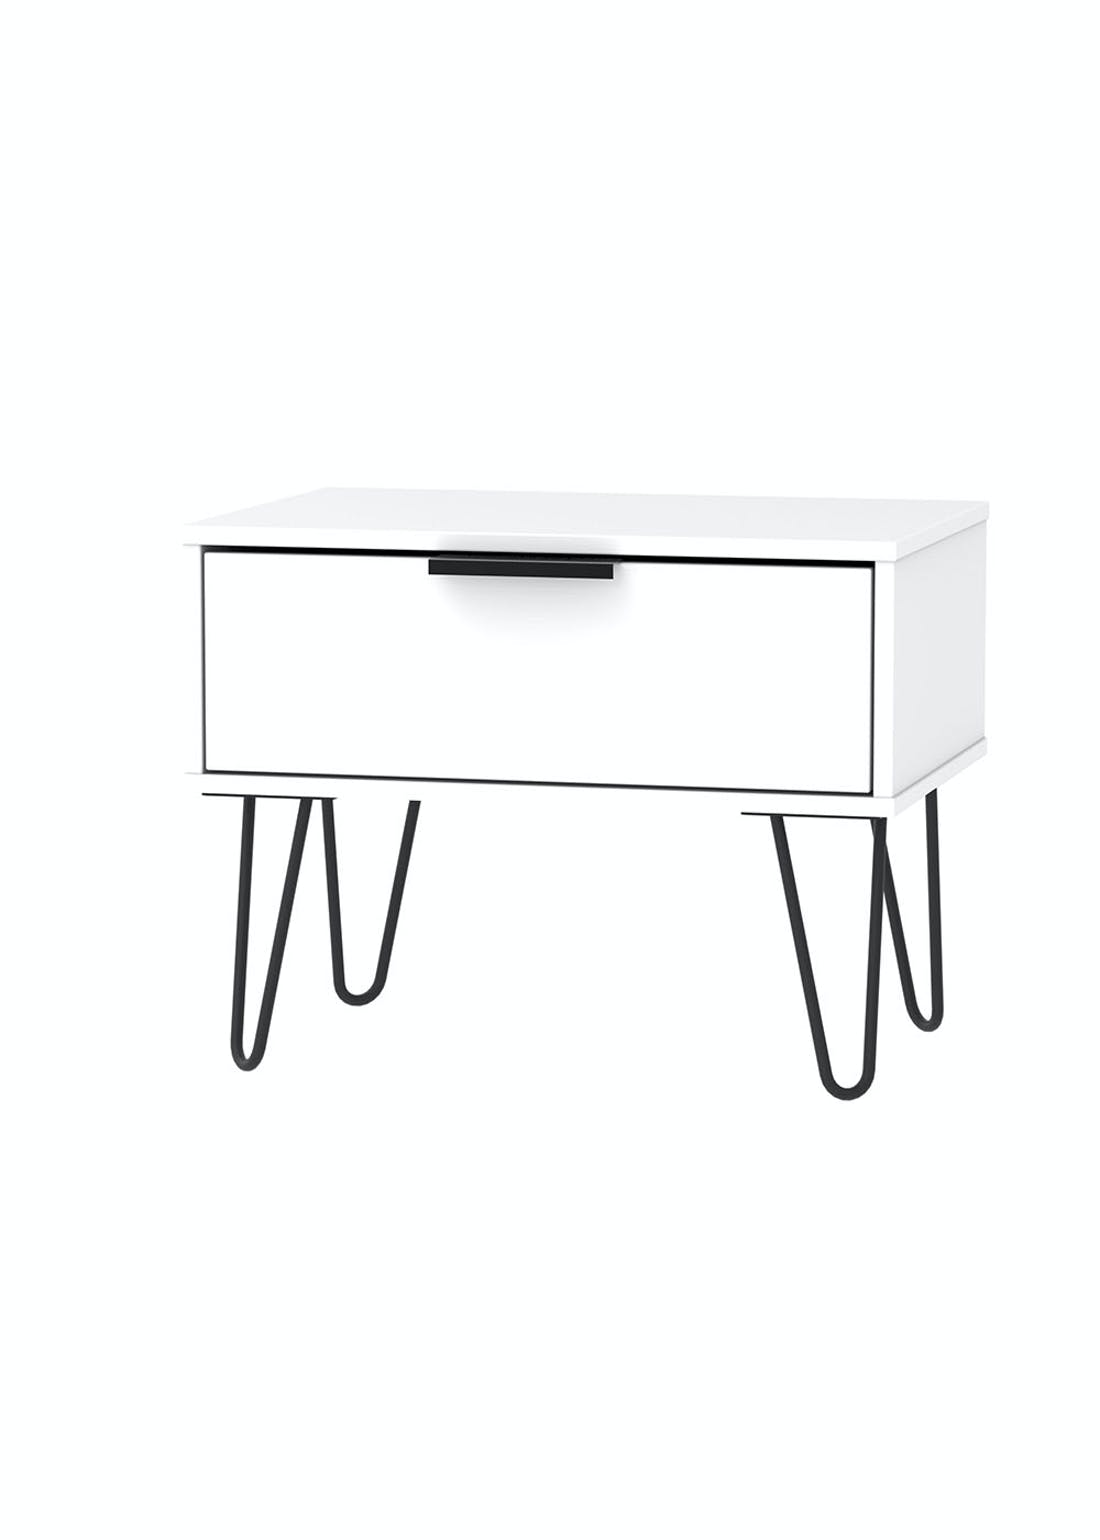 Swift Milano 1 Drawer Midi Chest (41cm x 57.5cm x 39.5cm)